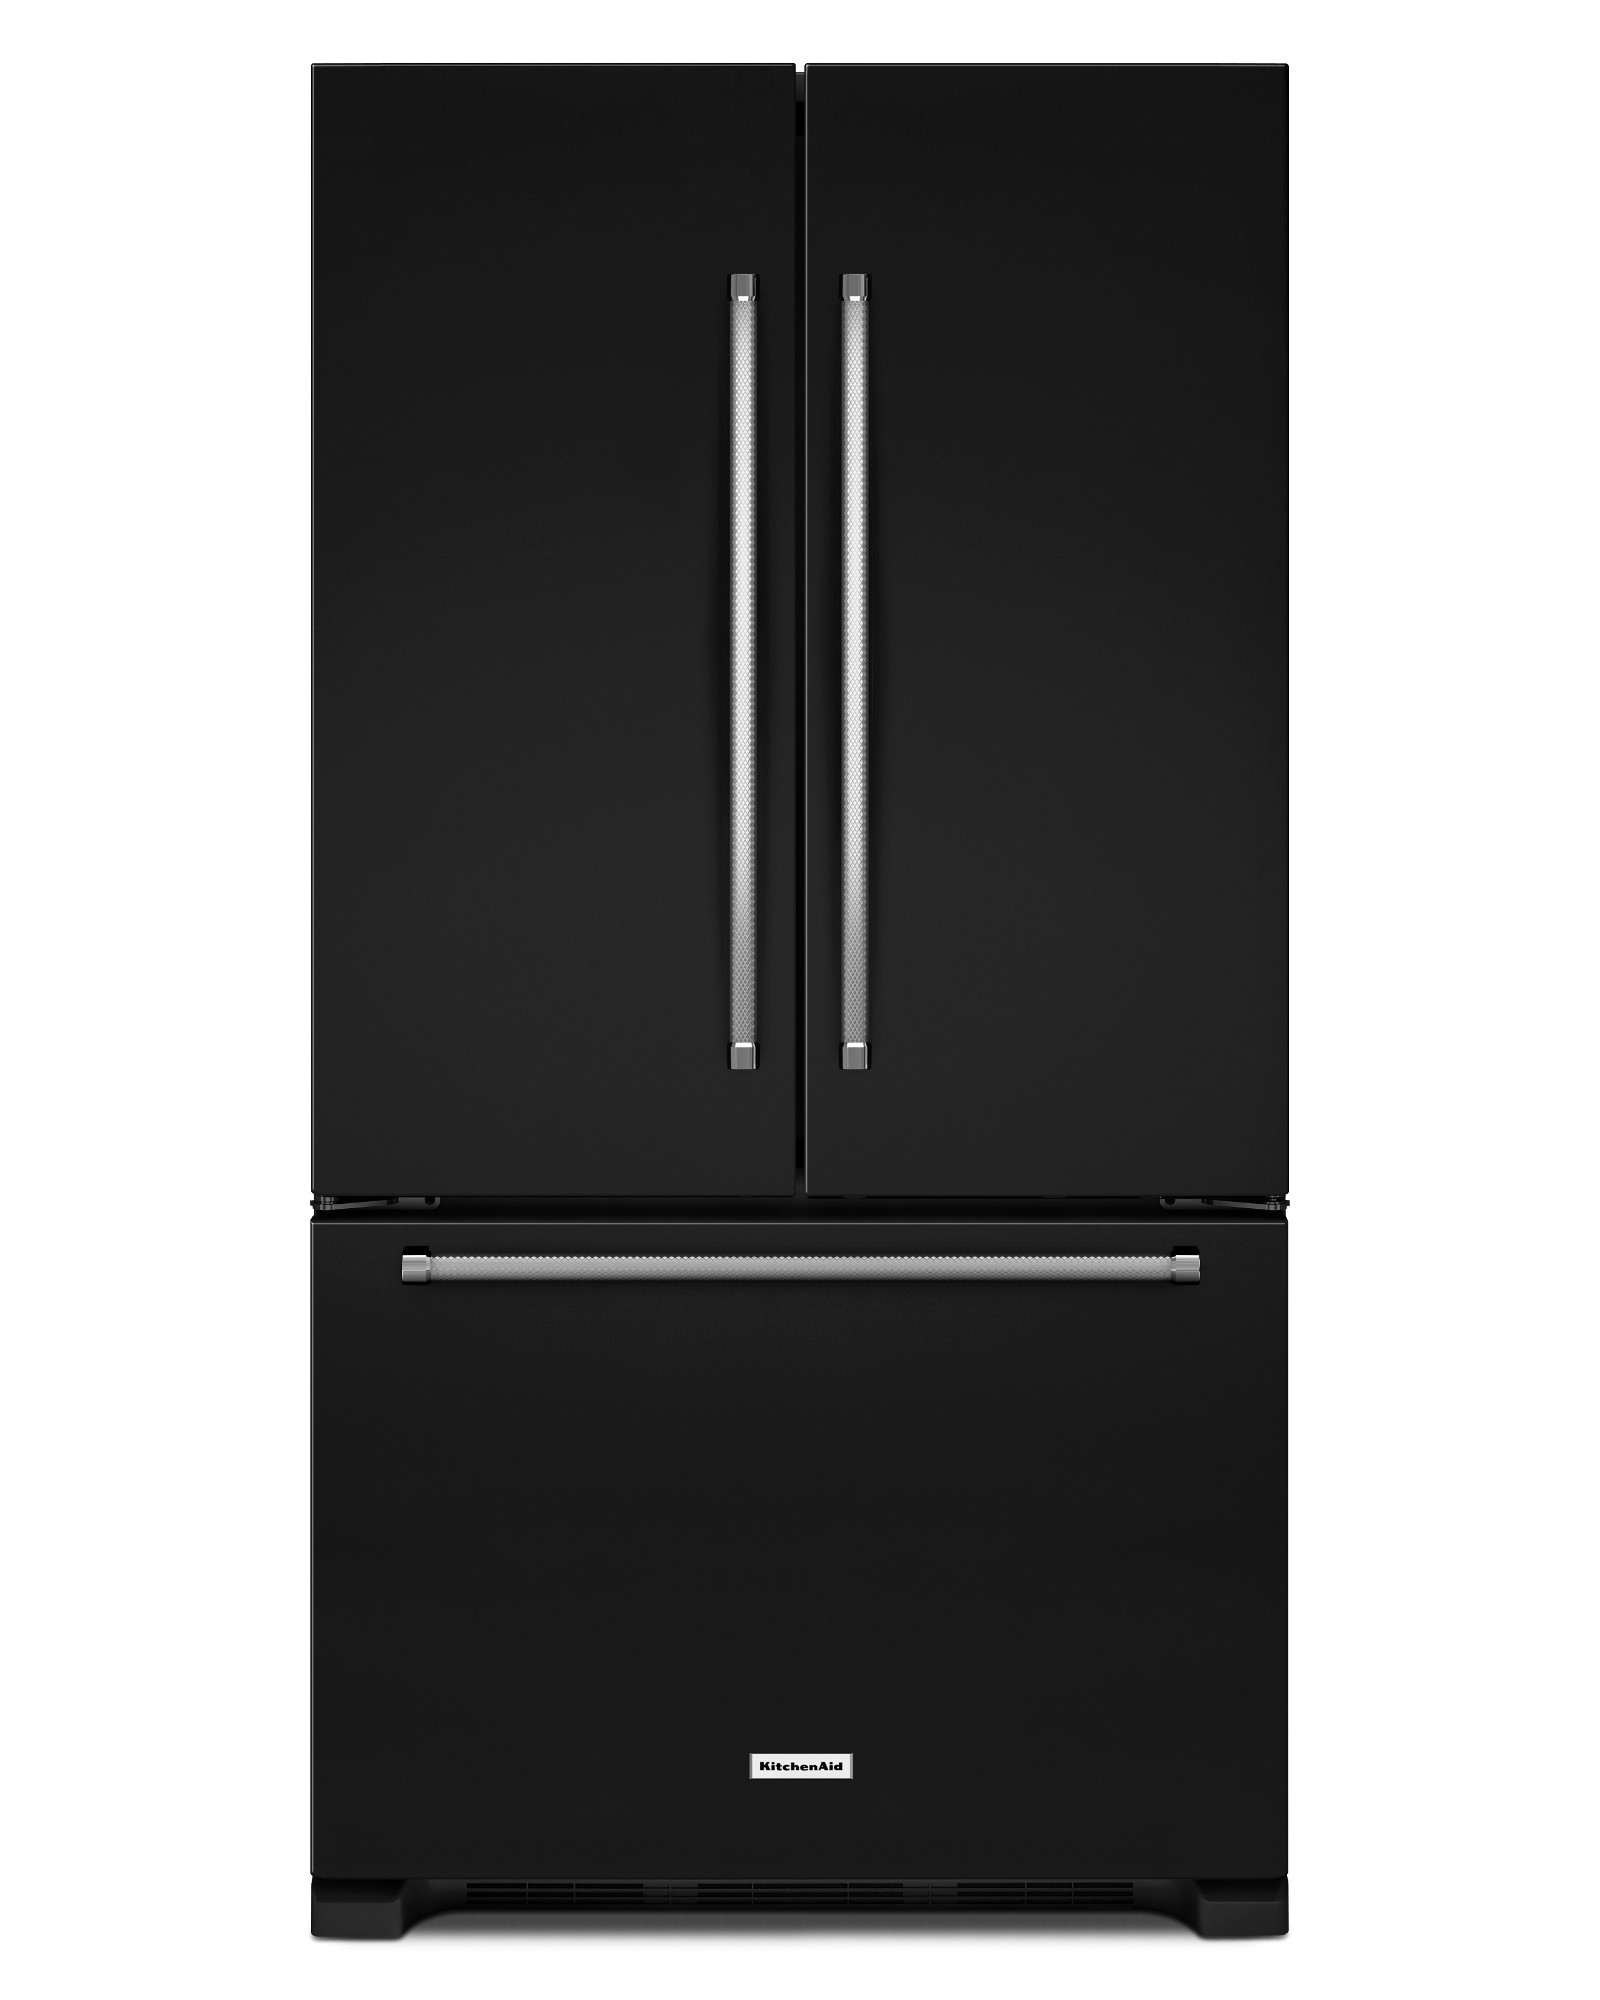 KRFC300EBL-20-cu-ft-Counter-Depth-French-Door-Refrigerator-Black